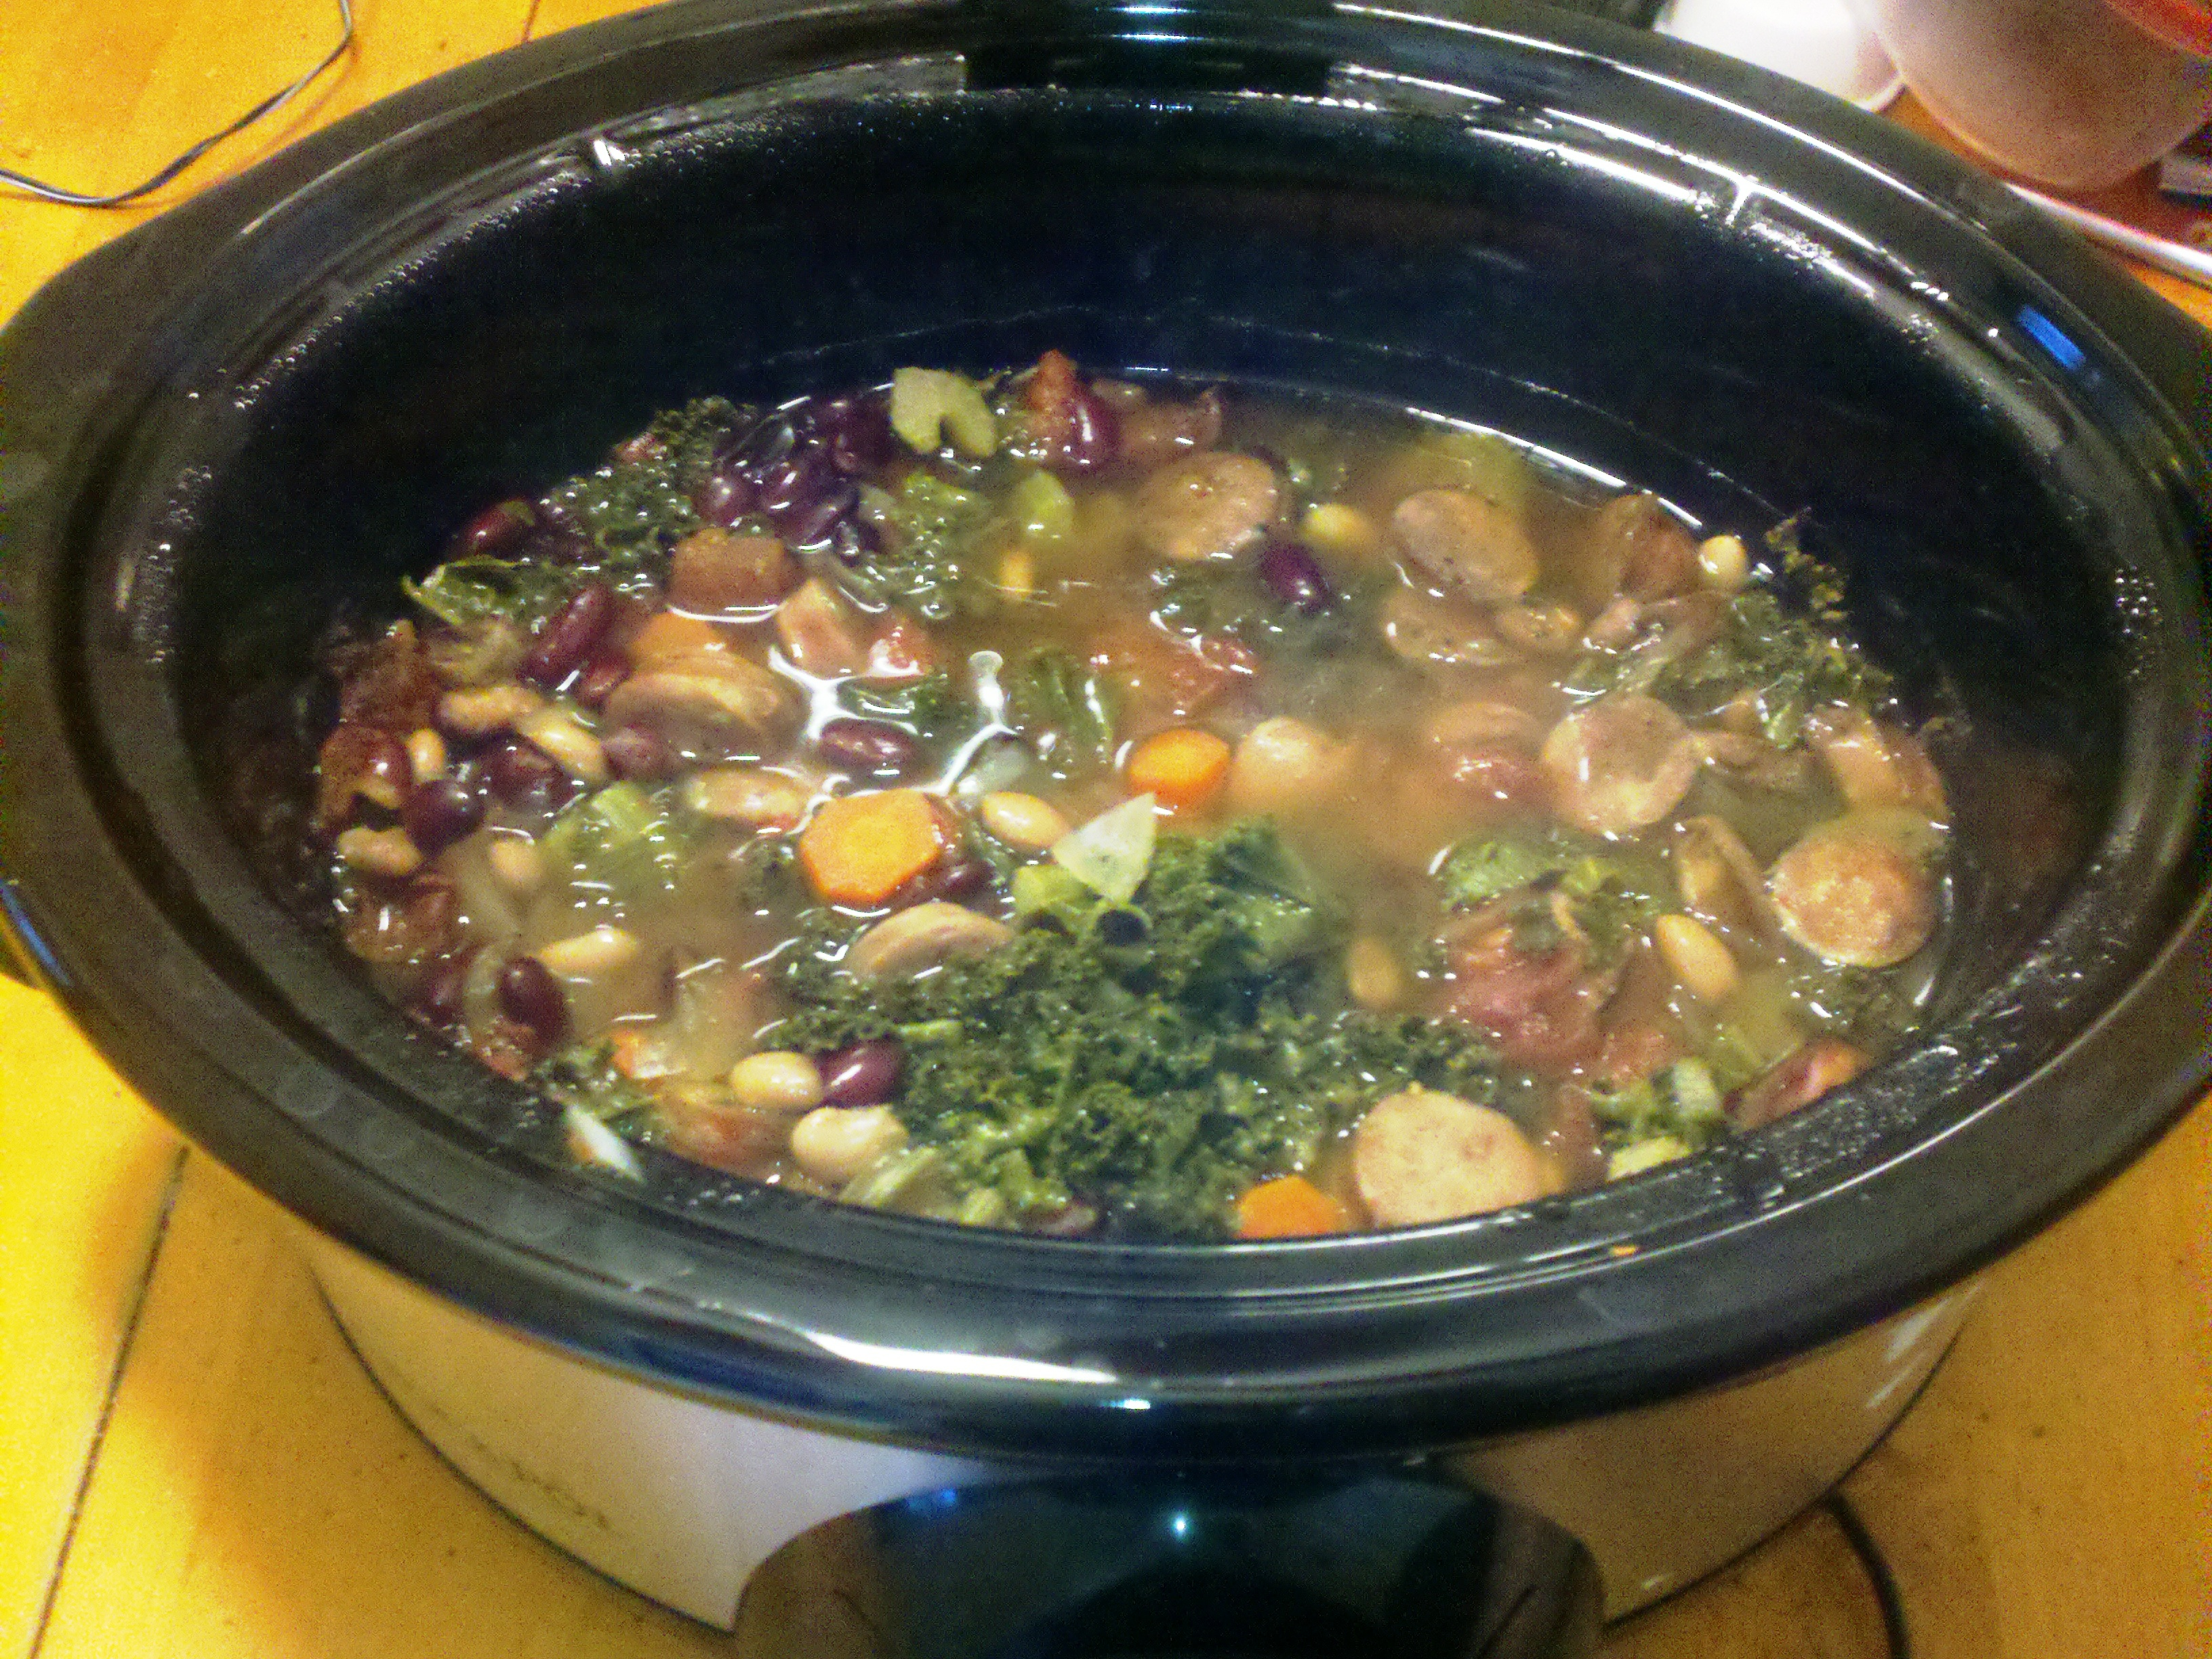 Kale is the new spinach (SubtitleHealthy Crockpot RecipeTuscan